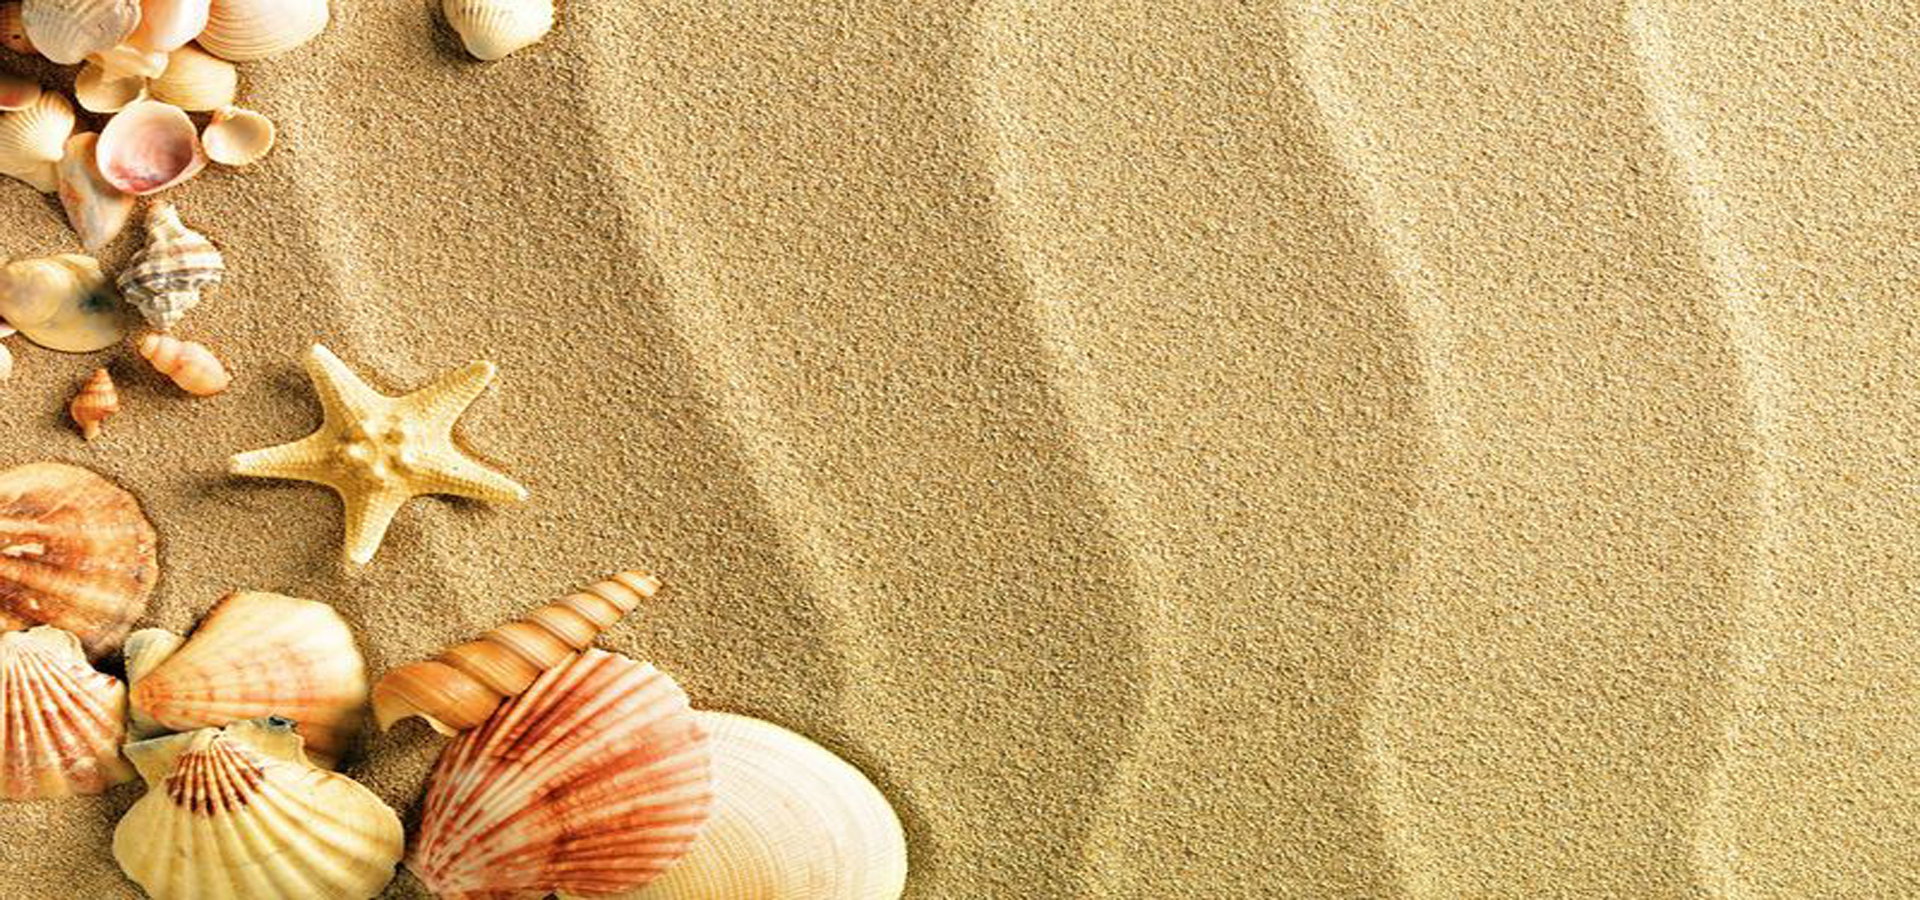 fresh and beautiful beach background  sand  shell  poster background image for free download